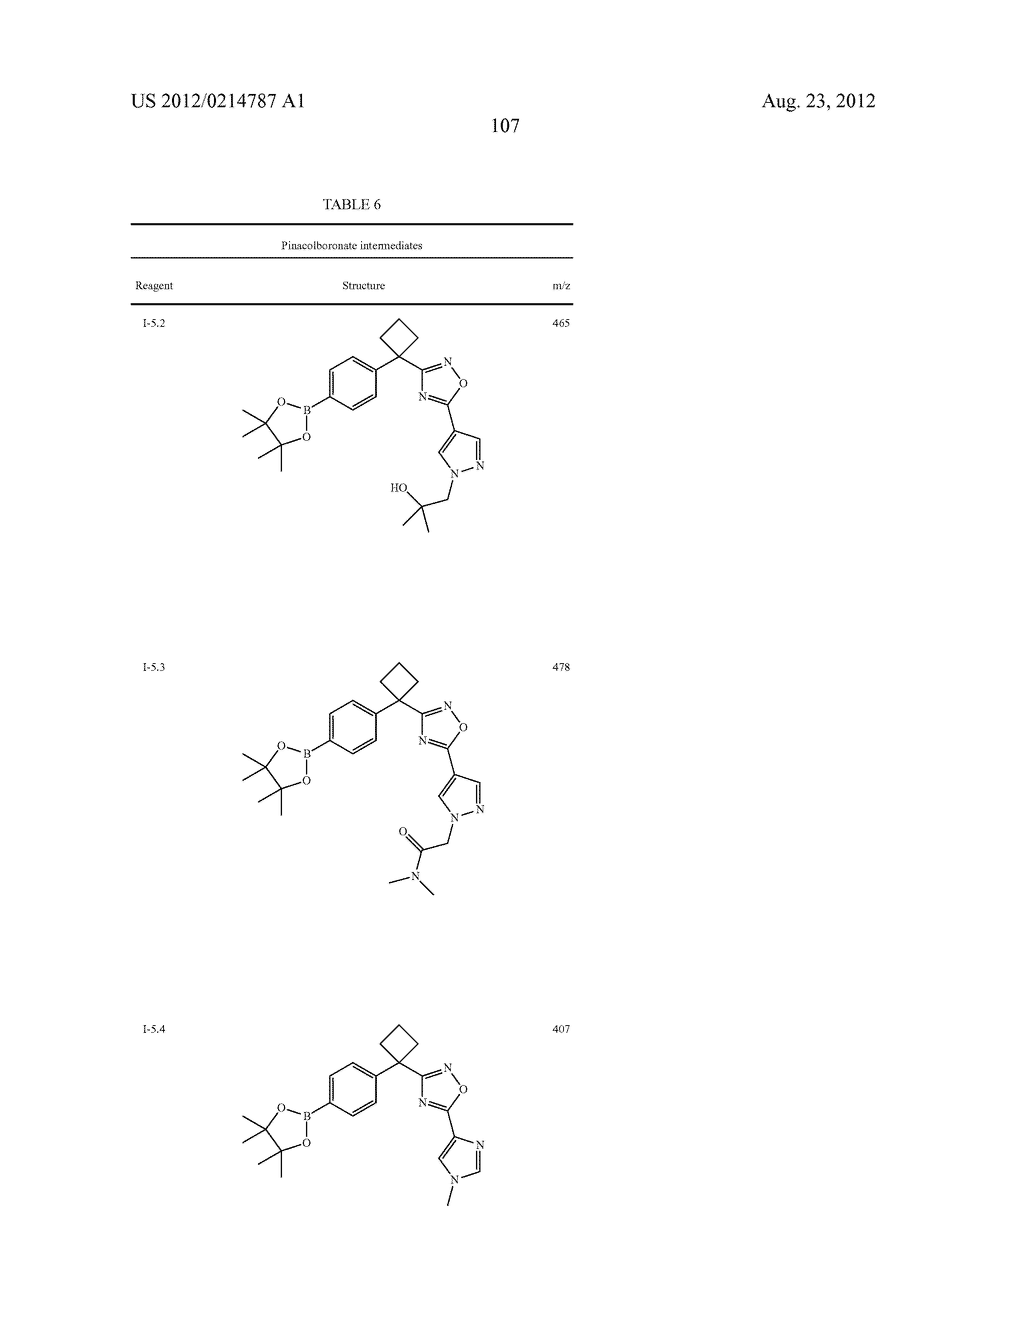 OXADIAZOLE INHIBITORS OF LEUKOTRIENE PRODUCTION - diagram, schematic, and image 108